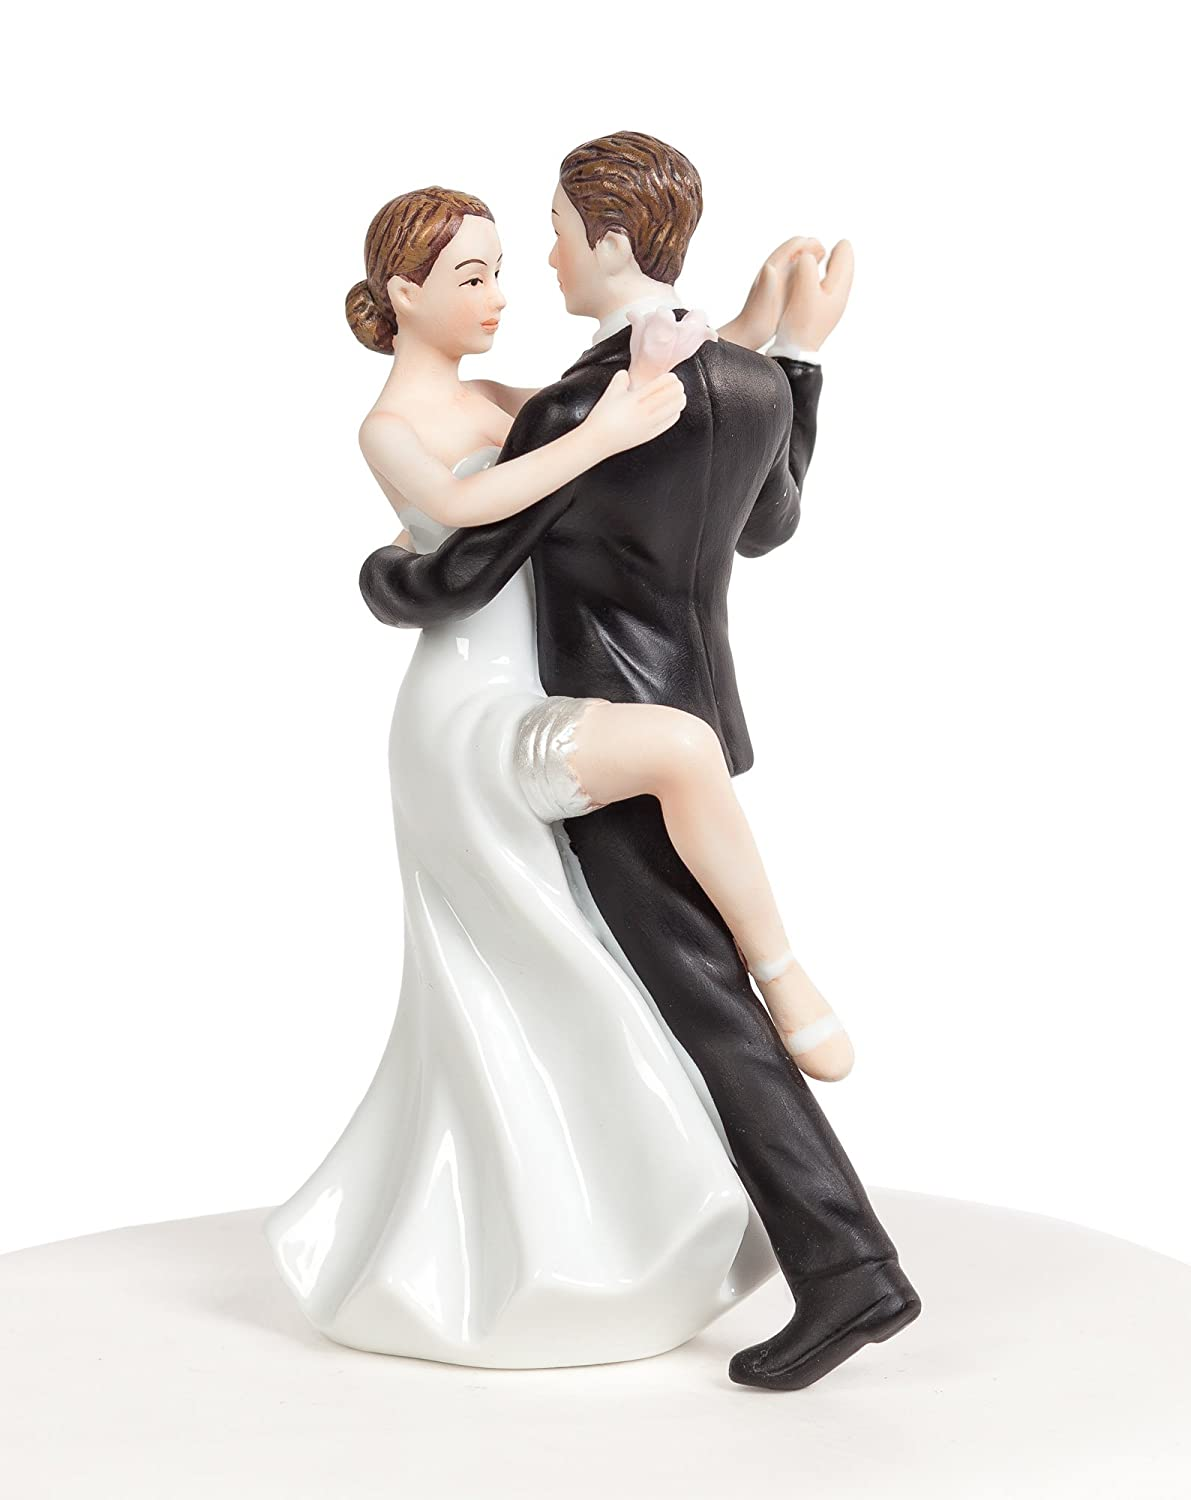 Amazon wedding collectibles funny sexy dancing wedding cake amazon wedding collectibles funny sexy dancing wedding cake topper with bride and groom fun sexy humorous figurine fine porcelain 55 inches junglespirit Choice Image